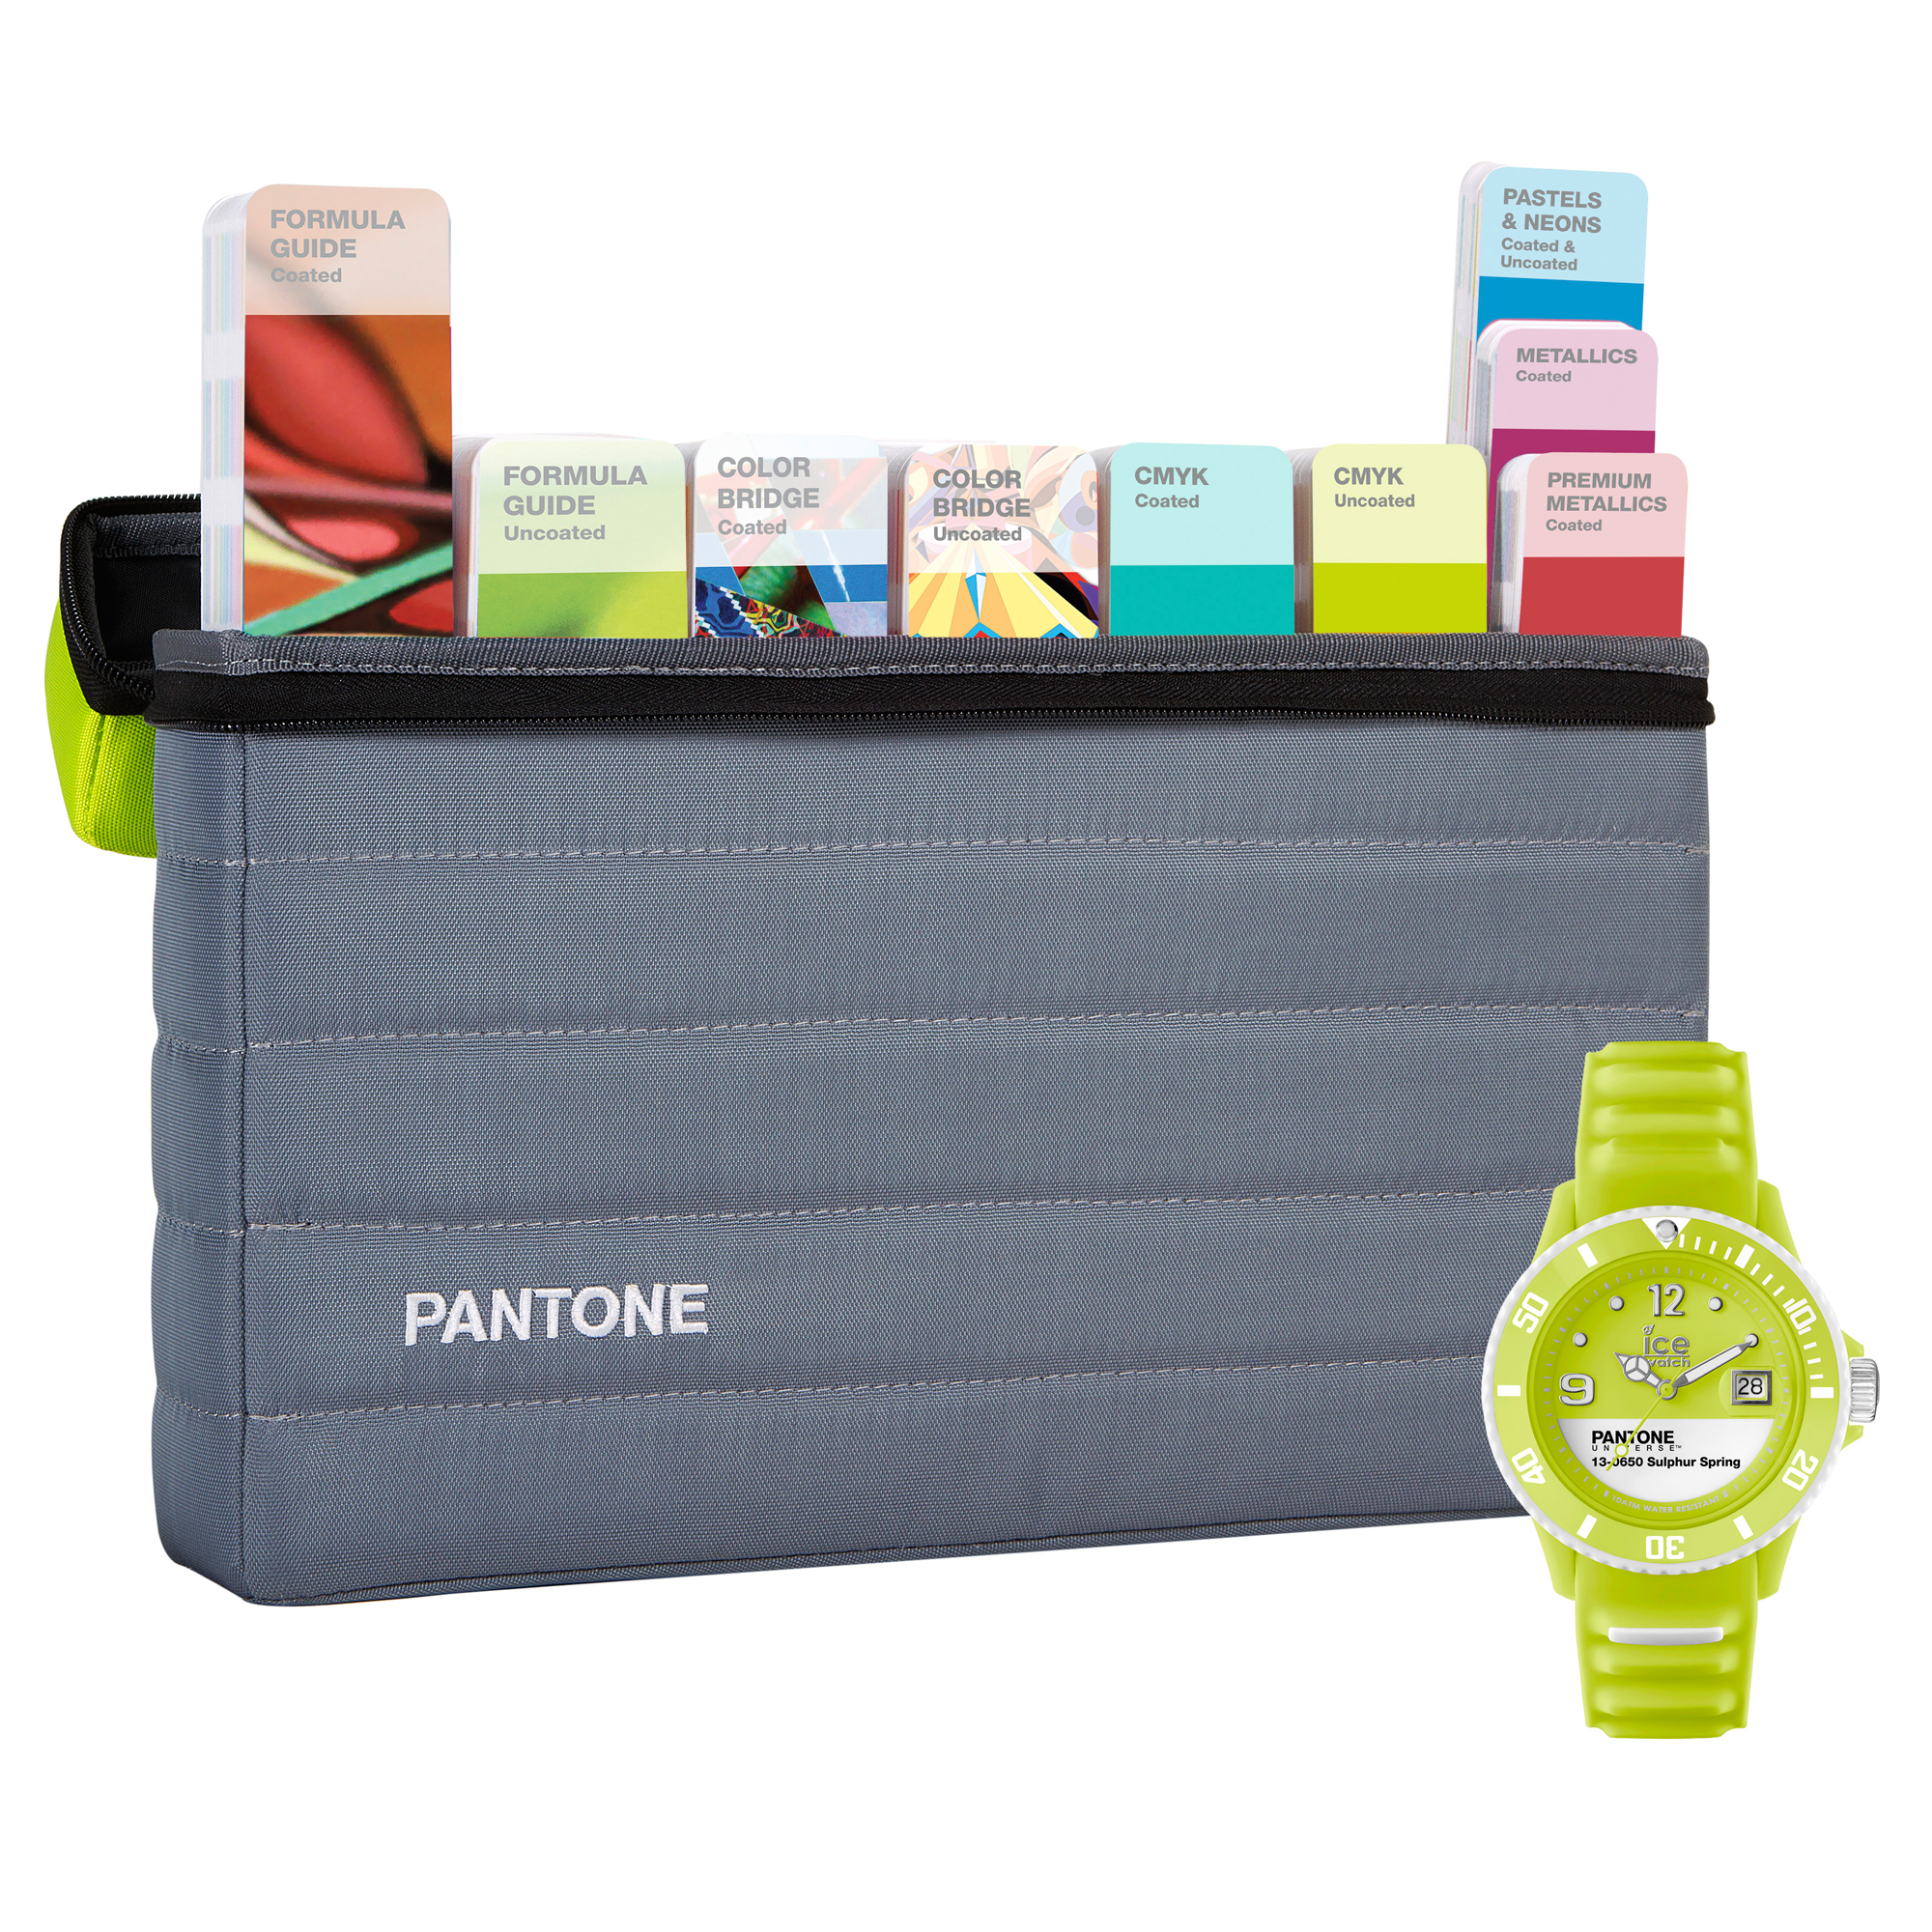 Pantone Portable Stuido Guide Set with FREE ICE Watch